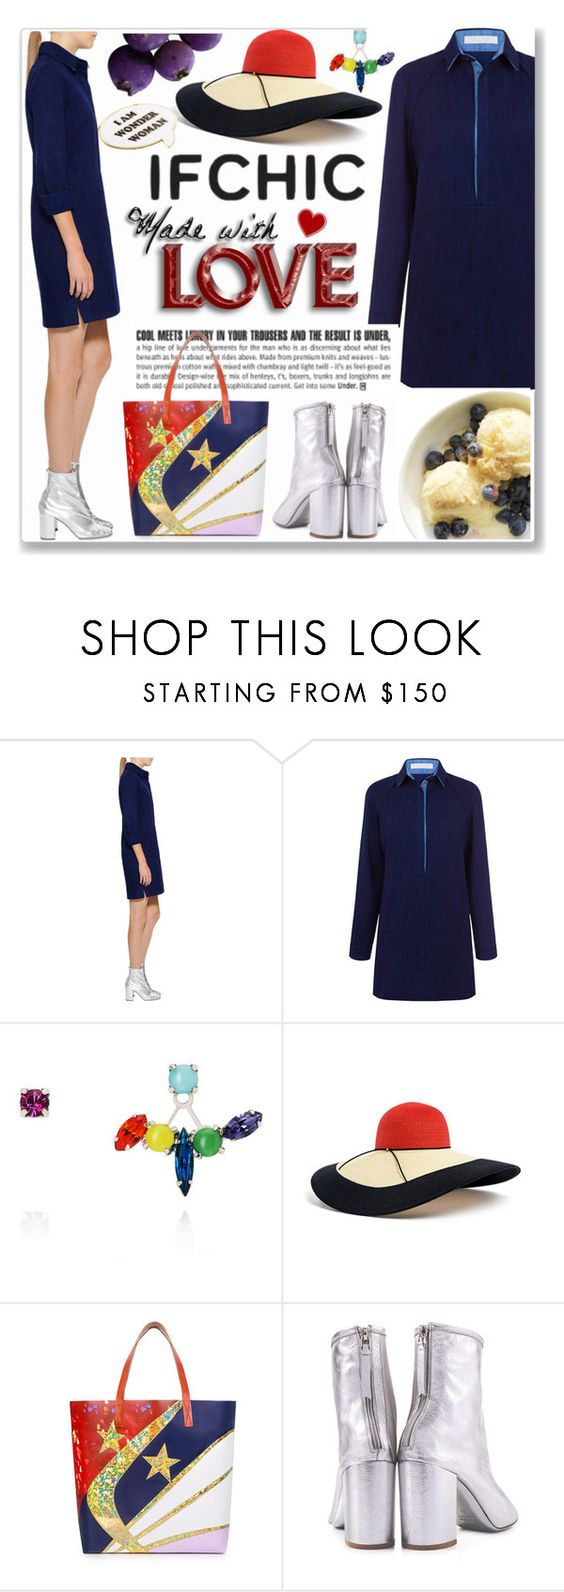 """""""Ifchic contest"""" by oleahg ❤ liked on Polyvore featuring Atea Oceanie, Joomi Lim, Eugenia Kim, Karen Walker, MARIOS, Noir and ifchic"""